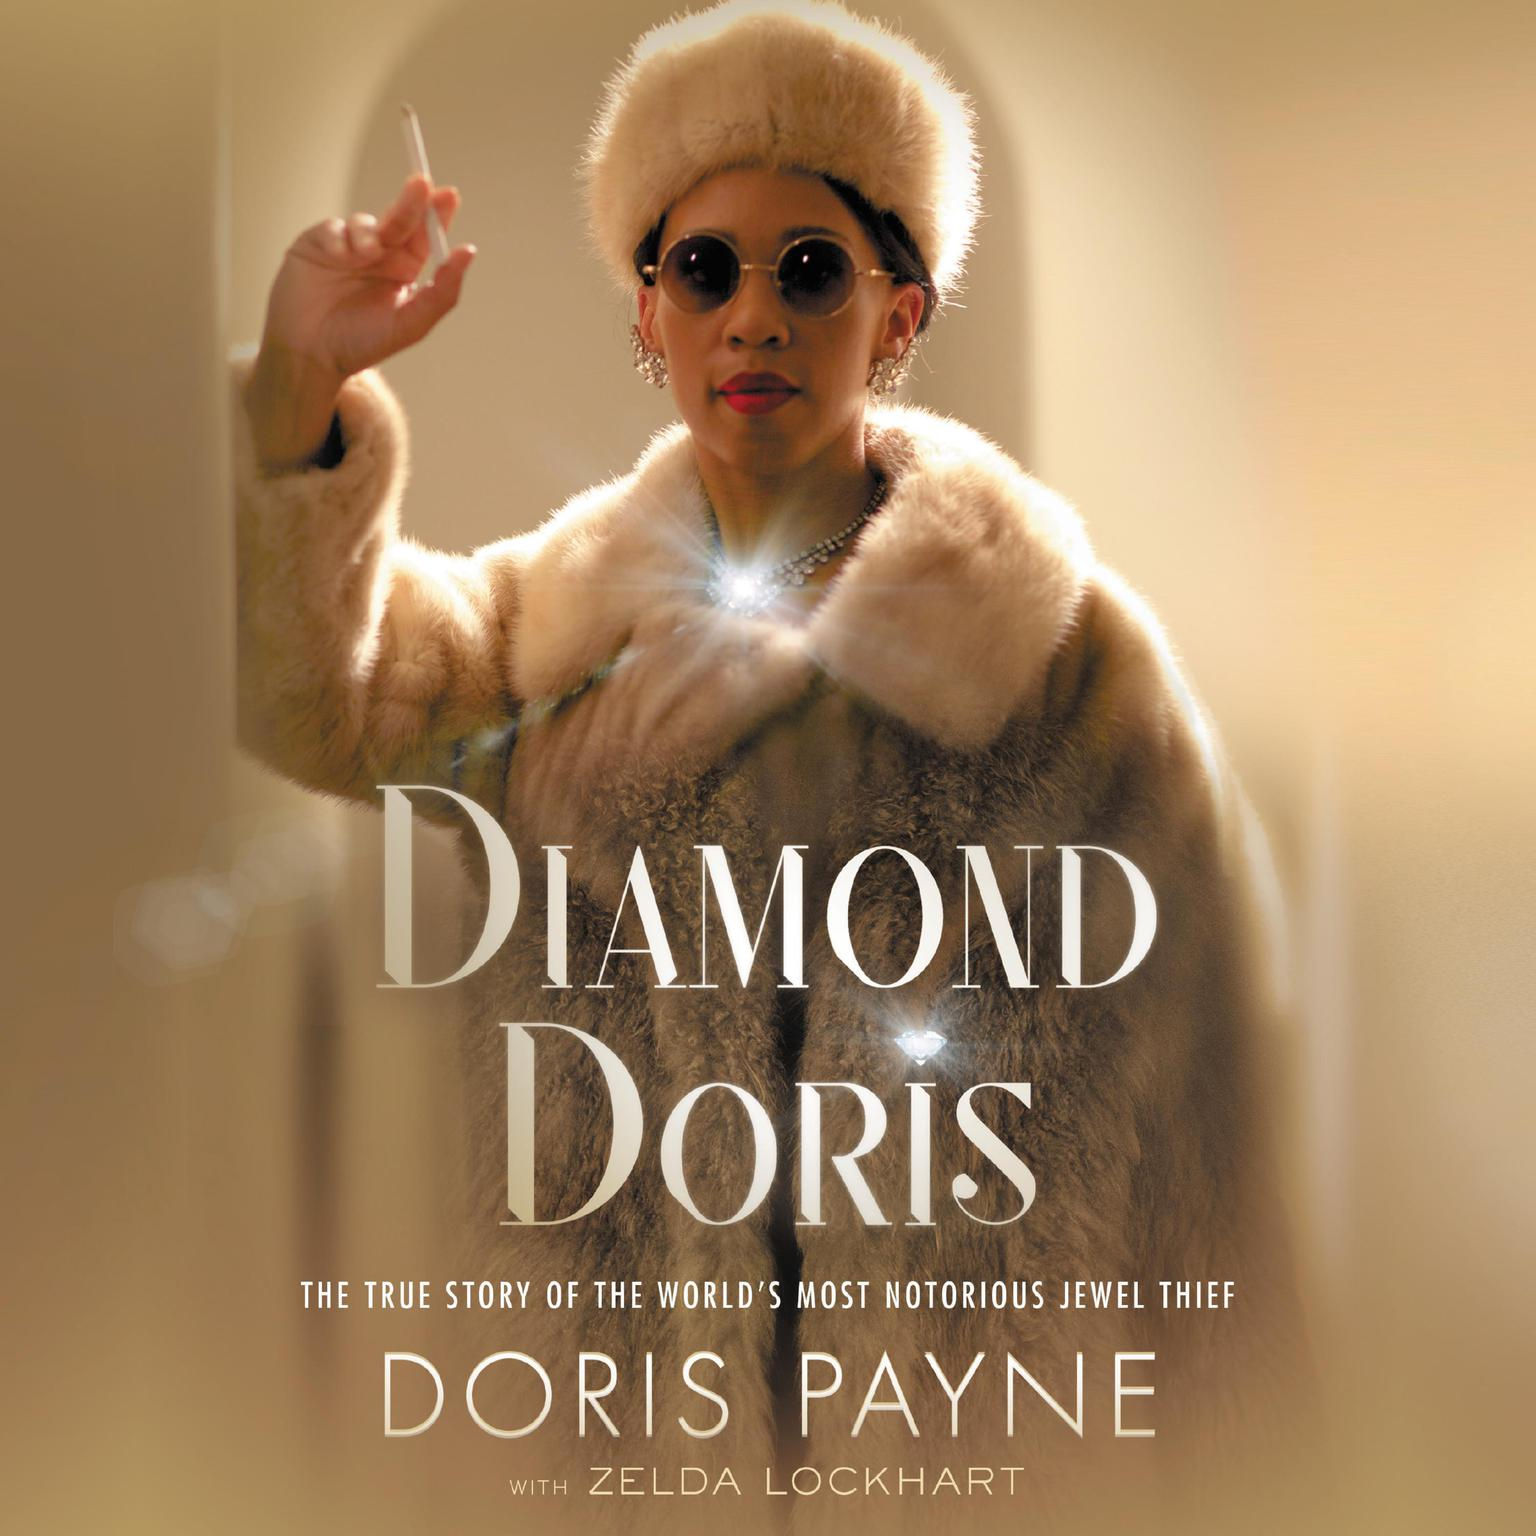 Printable Diamond Doris: The True Story of the World's Most Notorious Jewel Thief Audiobook Cover Art